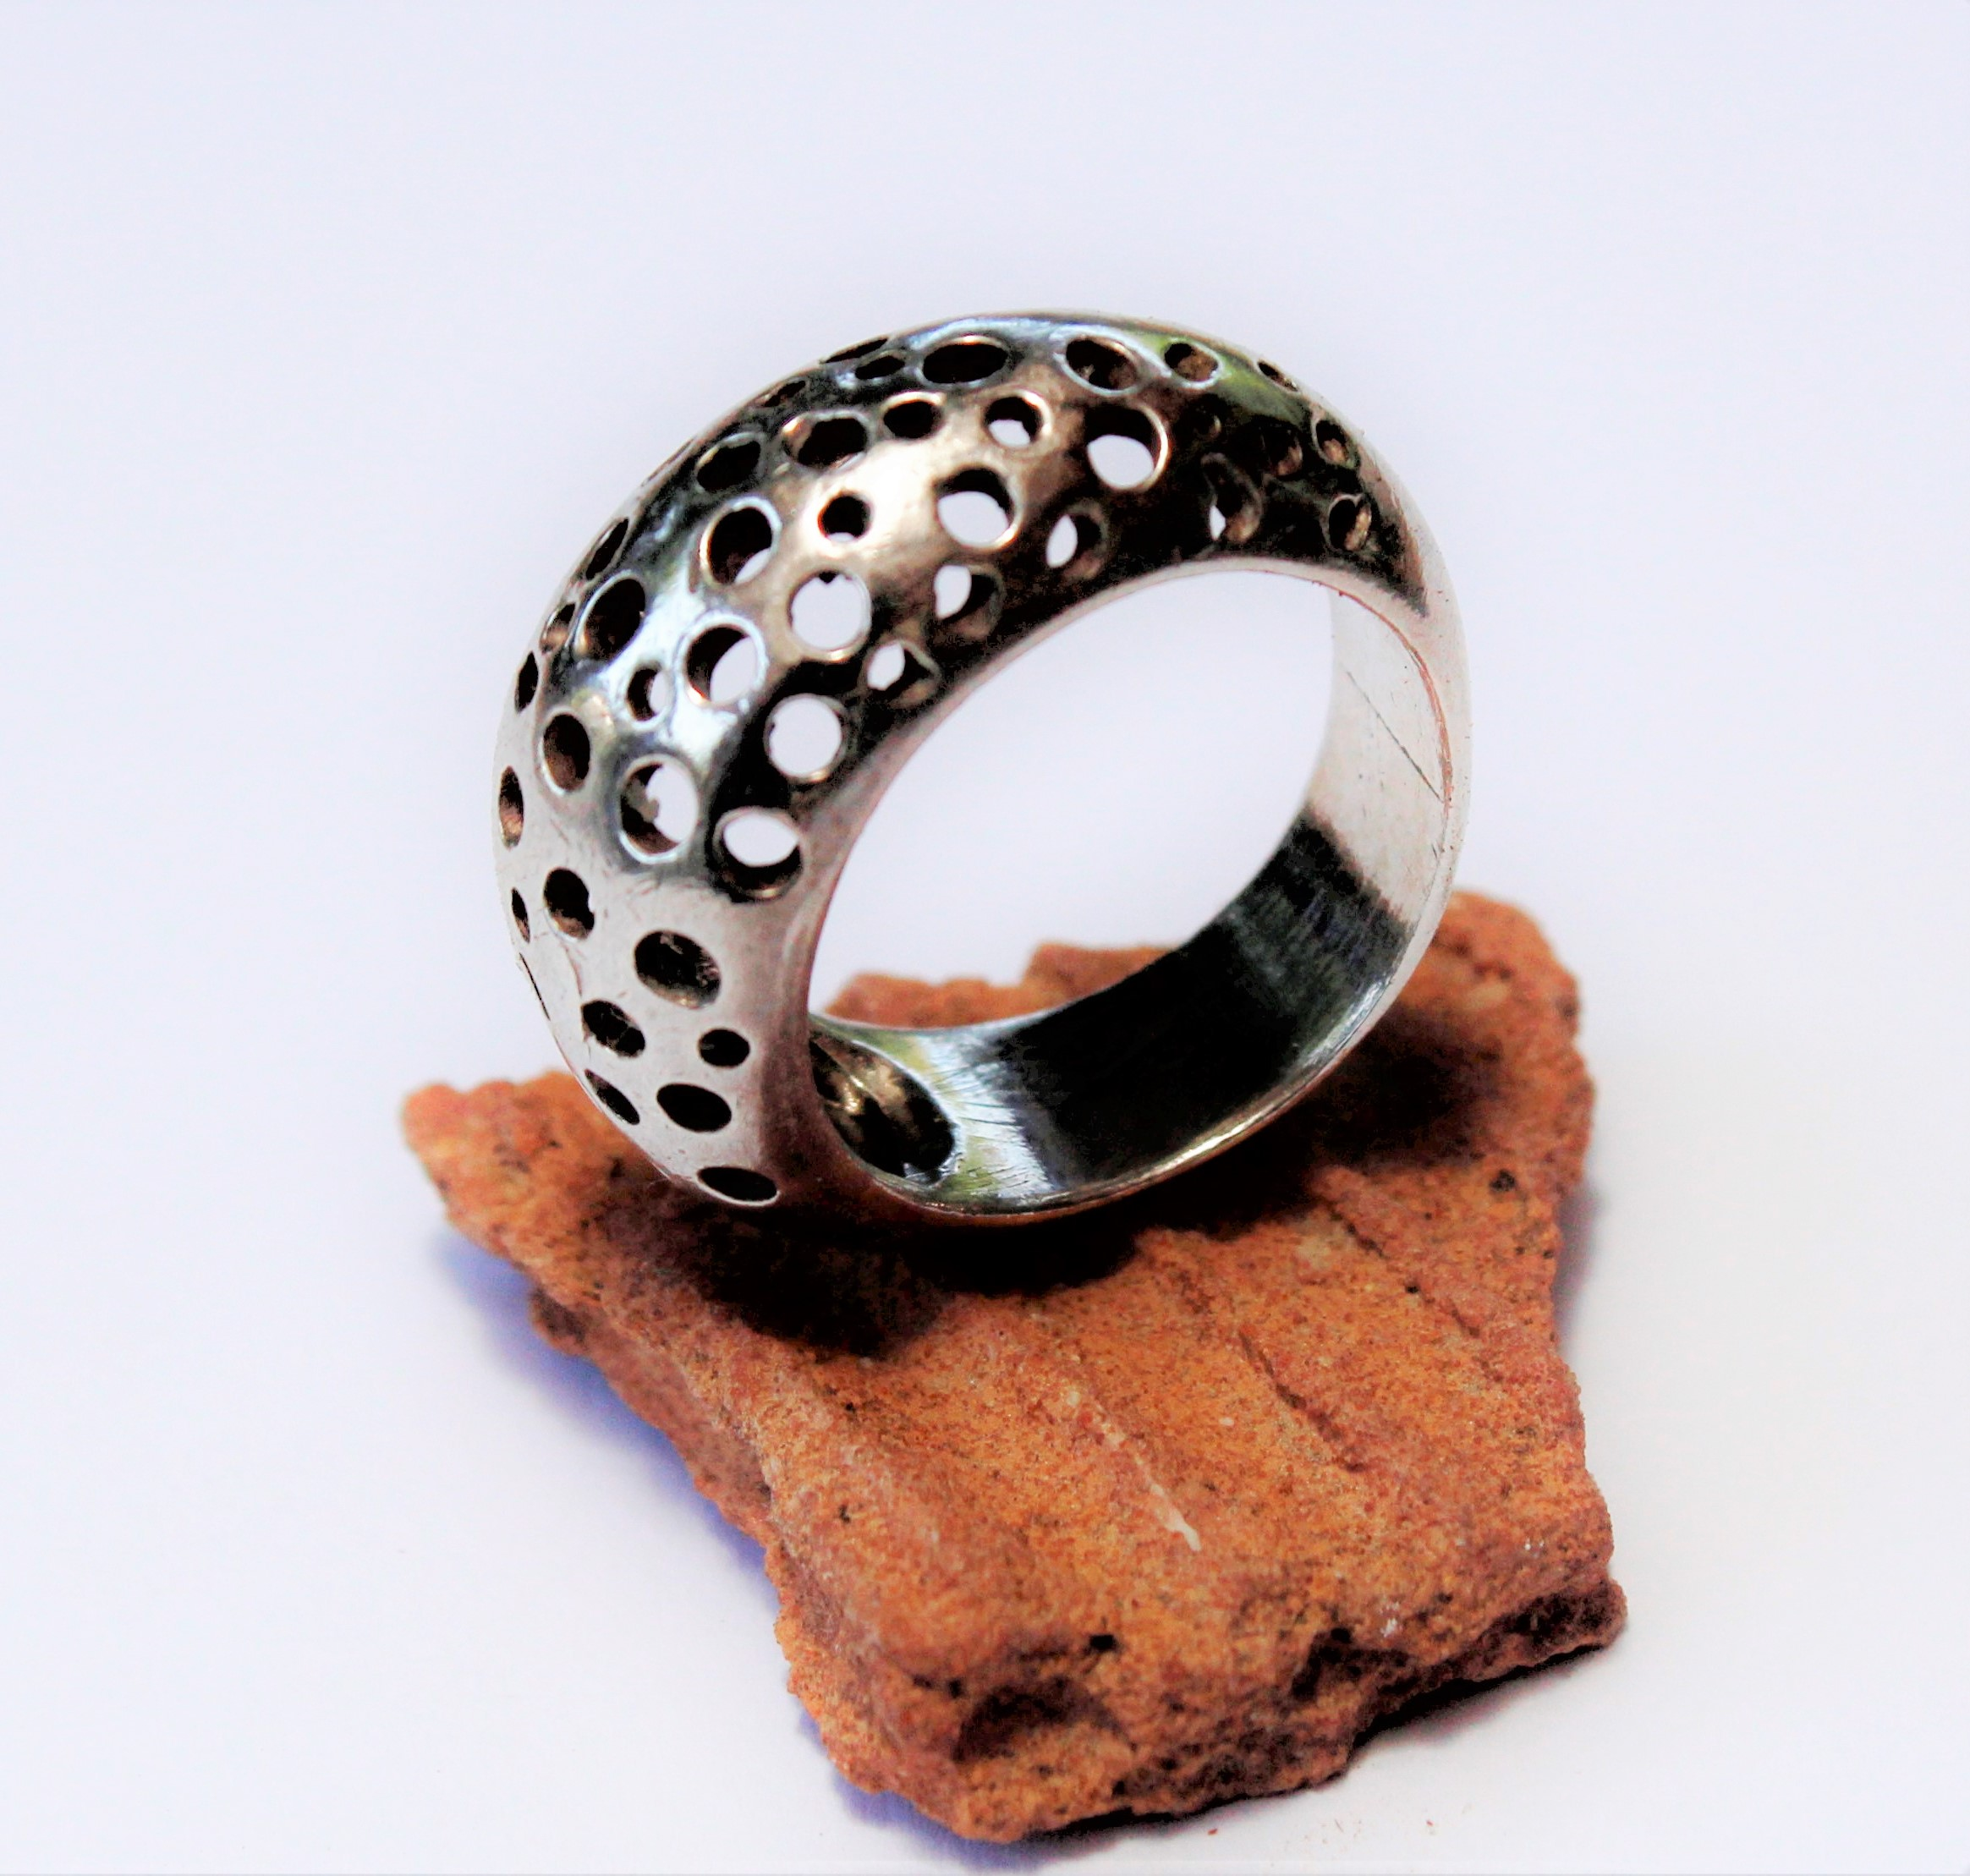 Handmade silver ring decorated with delicate cutouts around